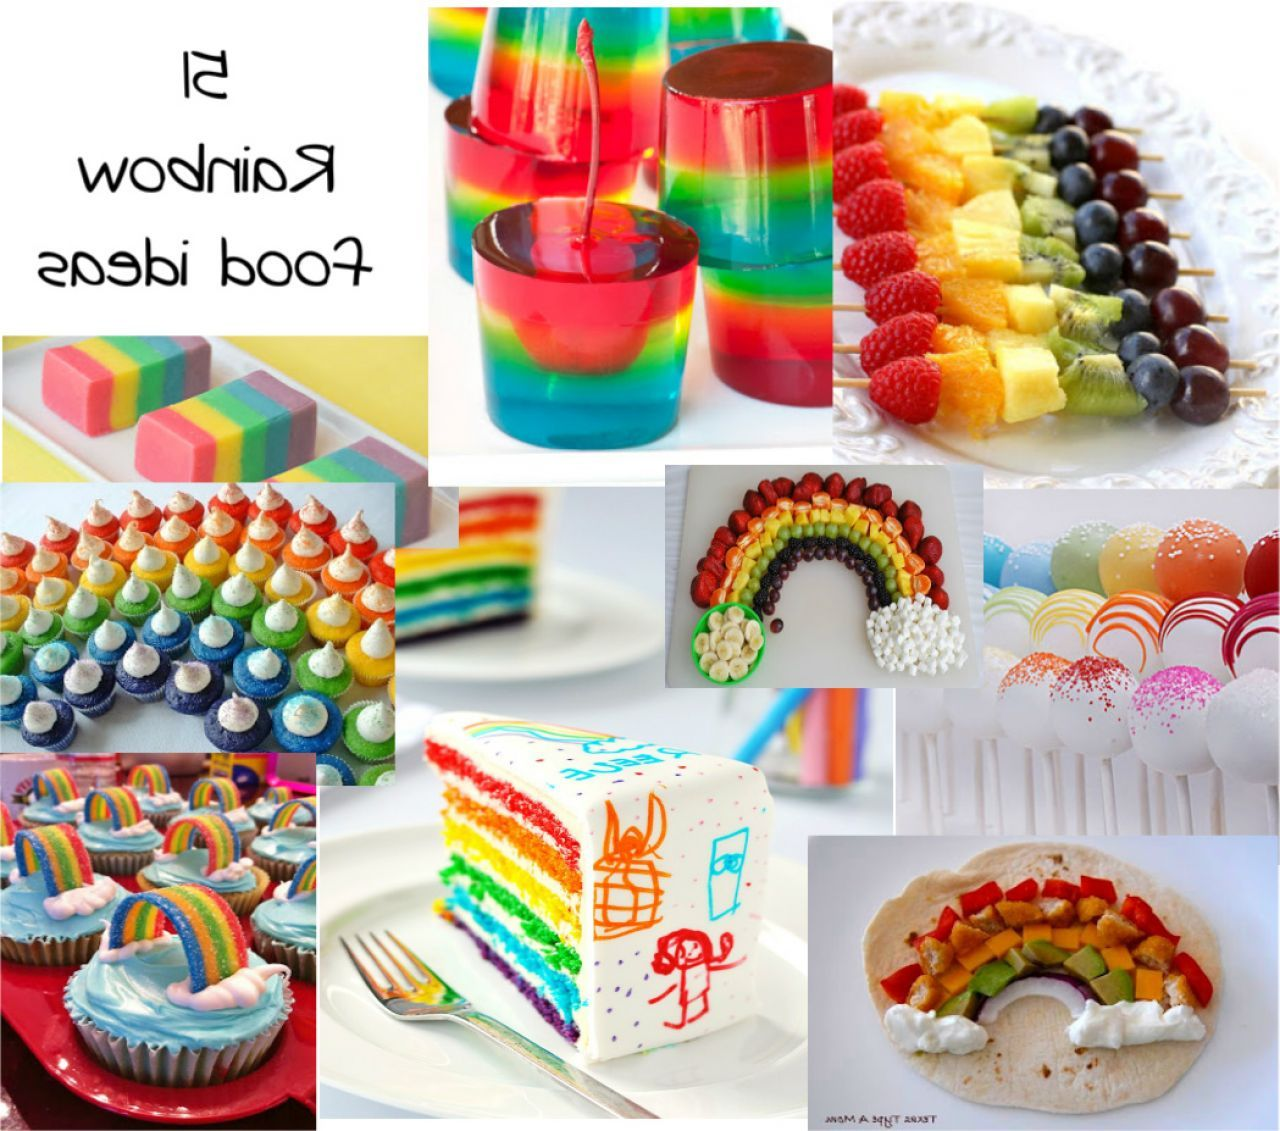 Summer birthday party food ideas 28925 linepc for Summer food party ideas